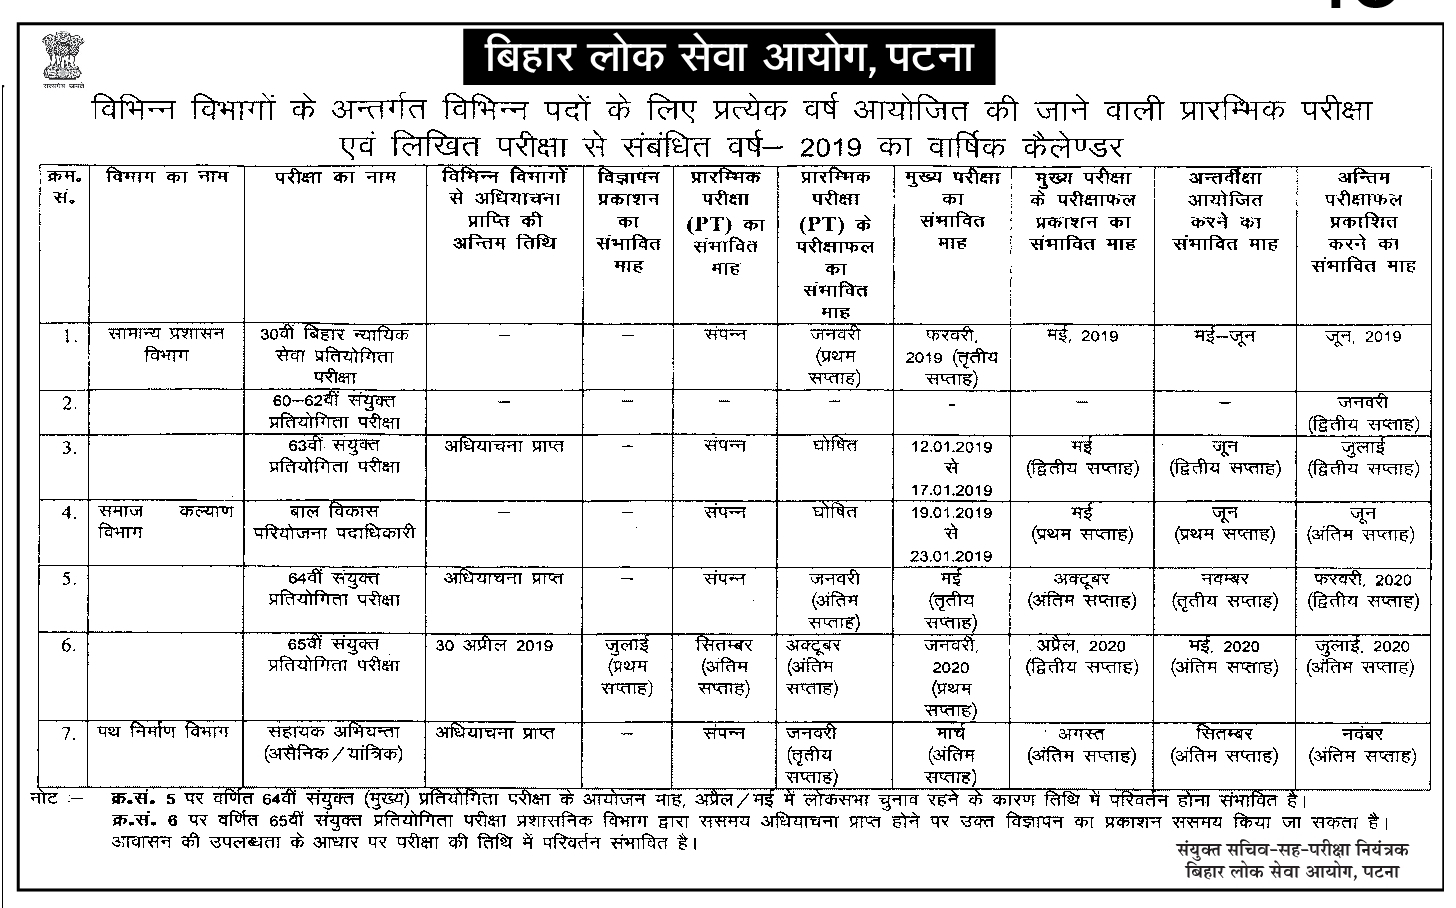 Bpsc Exam Calendar 2019  Vision with regard to Bihar Calendar 2020